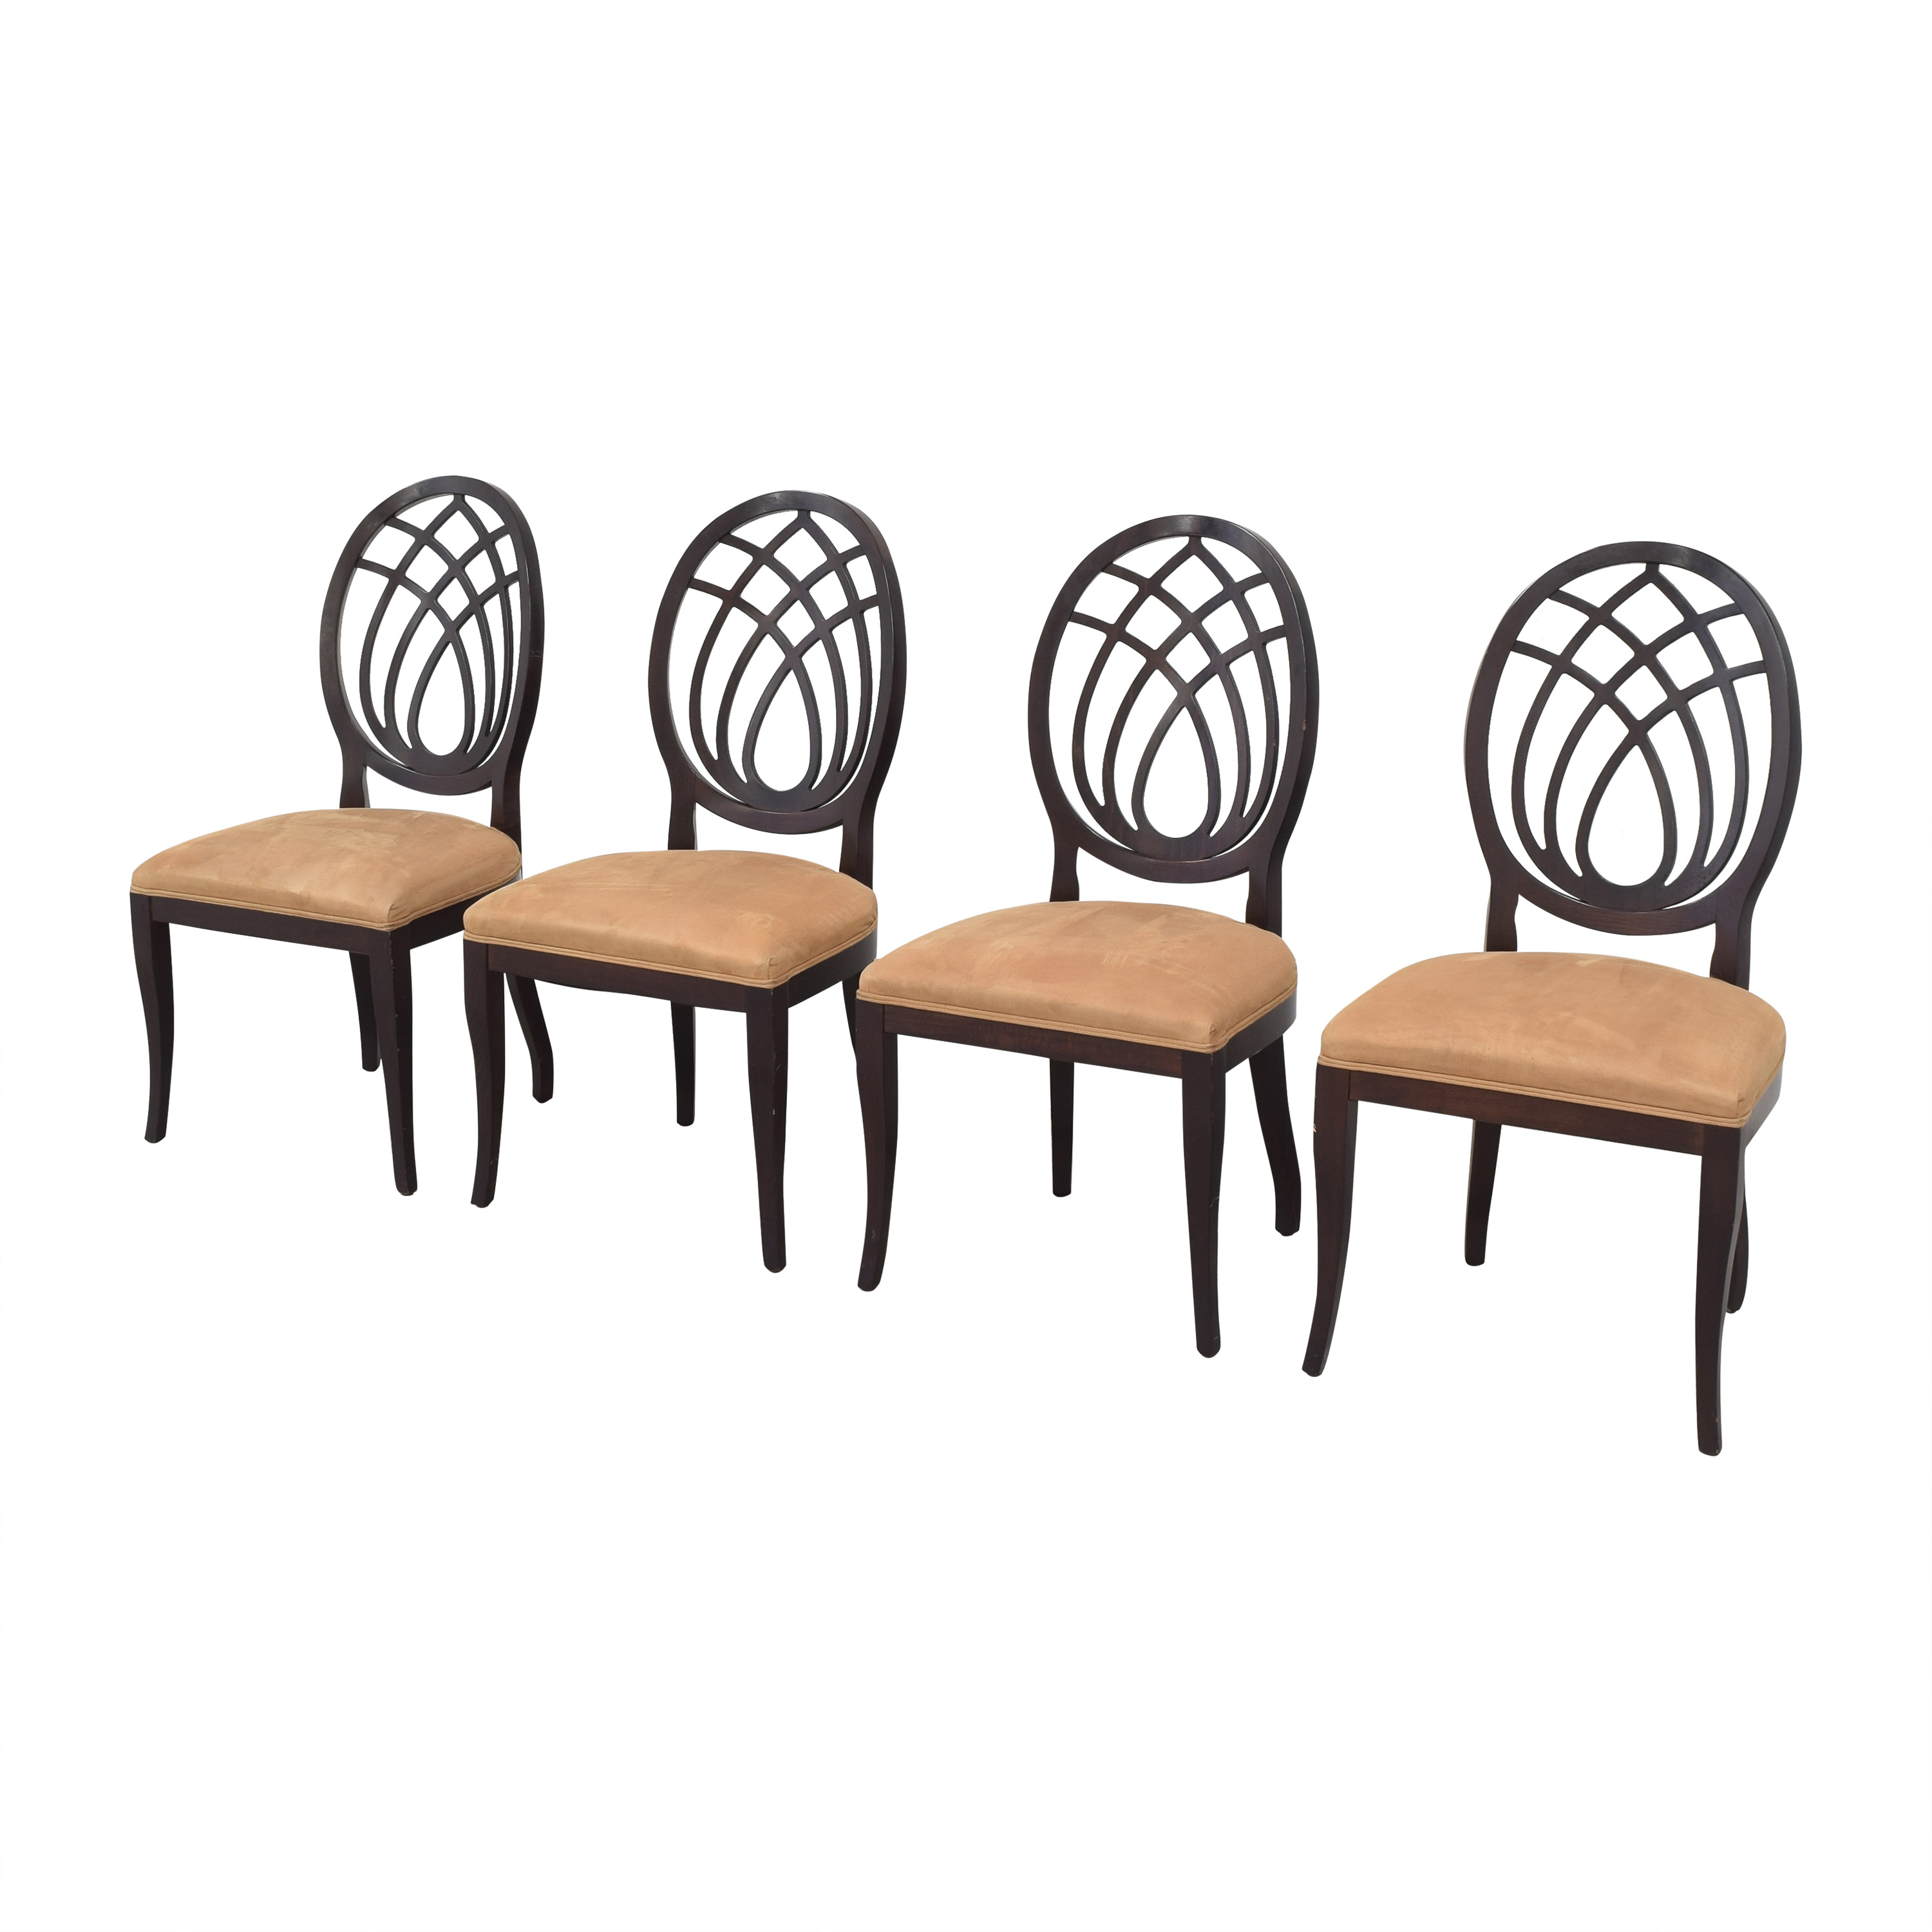 shop Bombay Company Oval Back Dining Side Chairs Bombay Company Chairs